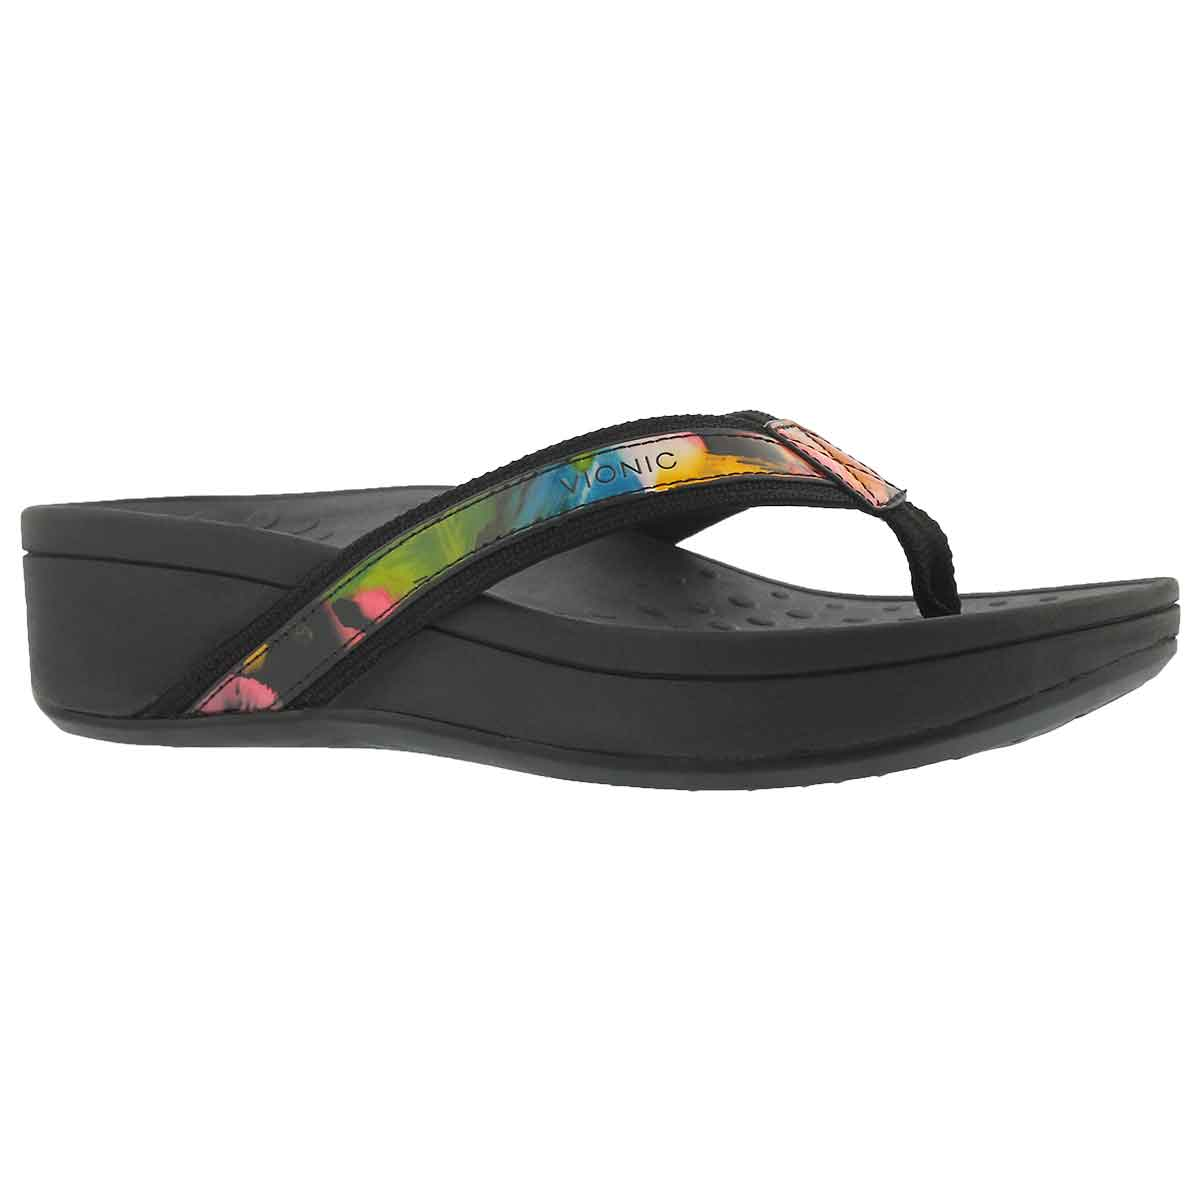 Women's HIGH TIDE floral arch support wdg sandals